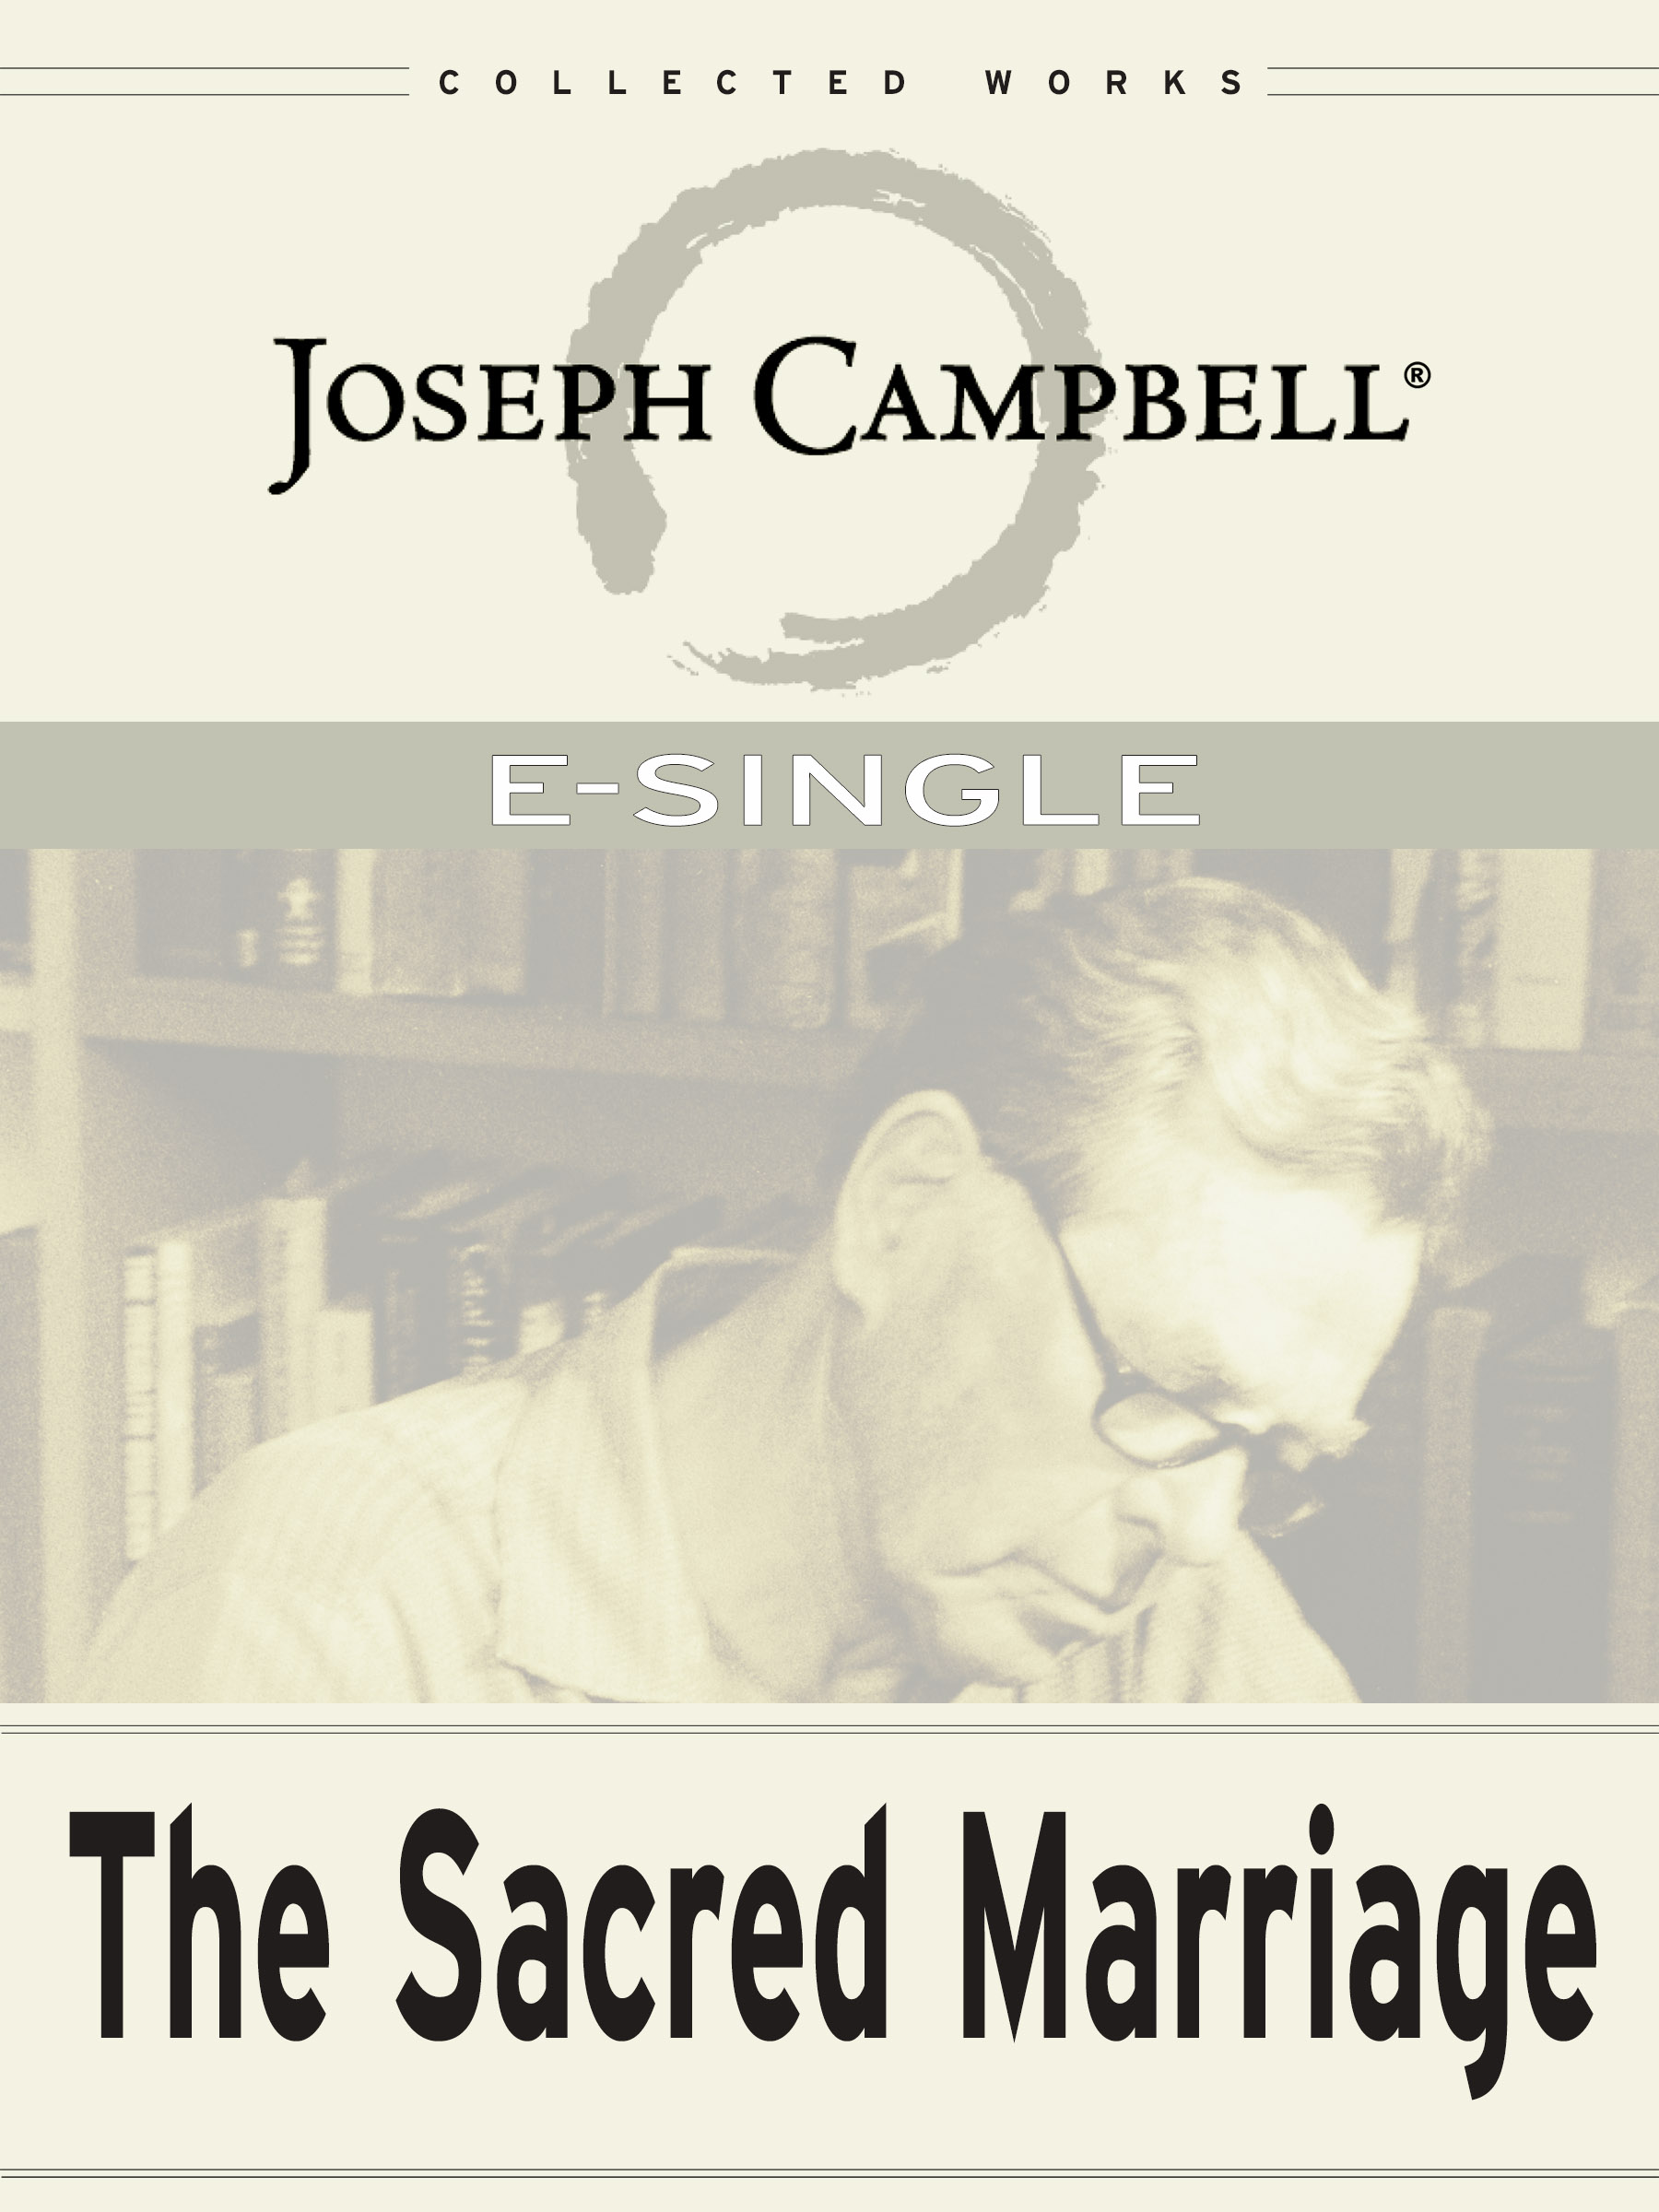 The Sacred Marriage — Thoughts on Love, Myth, and Partnership (Esingle)